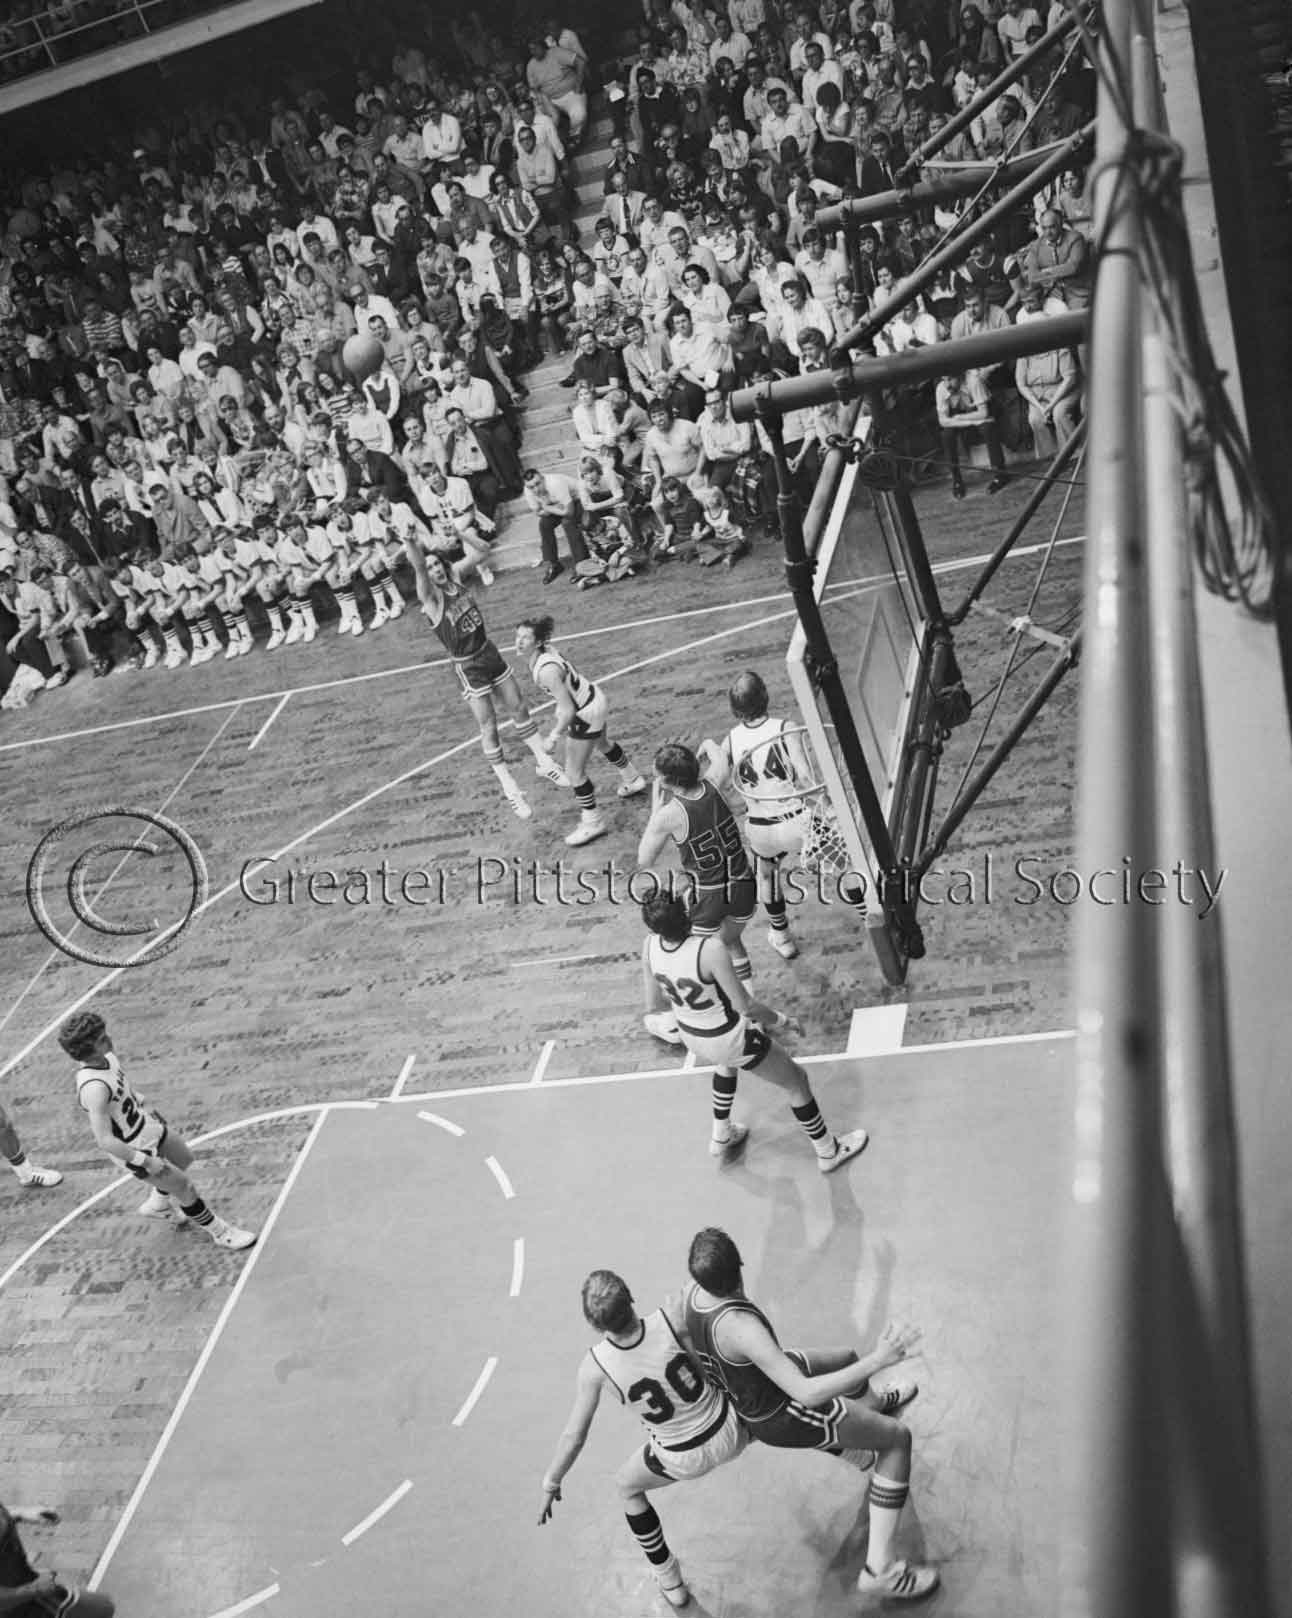 A High-School Basketball Game Between the Pittston Patriots and the Lackawanna Trail Lions, Scranton, PA (1976), Sunday Dispatch Photographic Collection (1976.1.1101), Greater Pittston Historical Society, Pittston, PA.